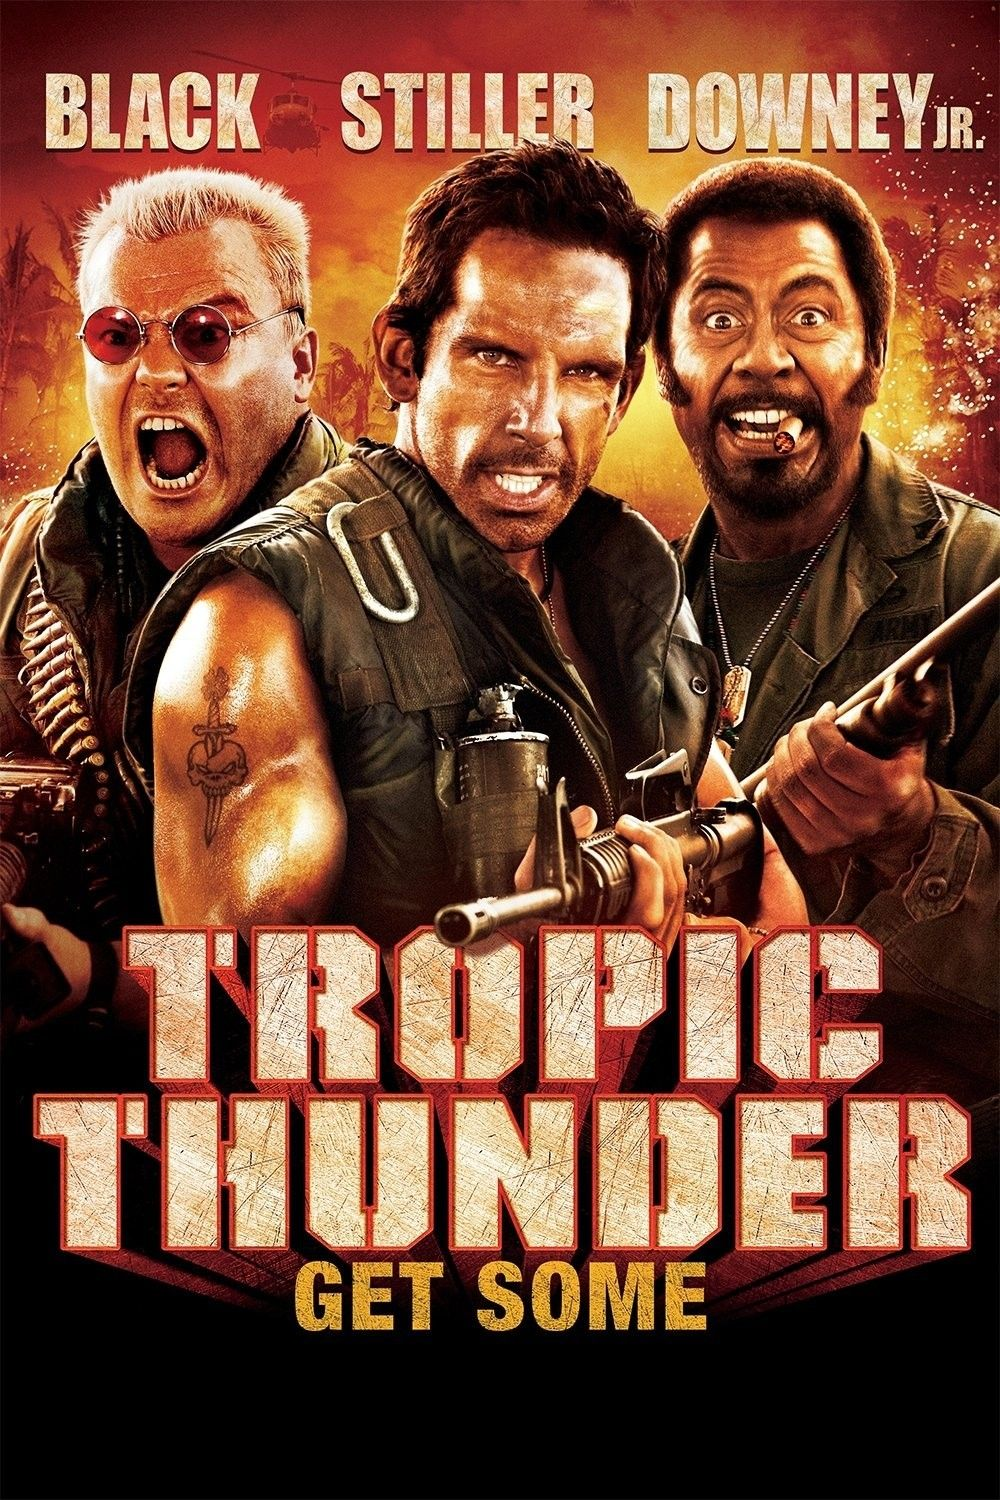 Tropic Thunder Robert Downey Jr Was Great I Hated It The First Time I Saw It But Now It S One O Tropic Thunder Movie Comedy Movies Full Movies Online Free